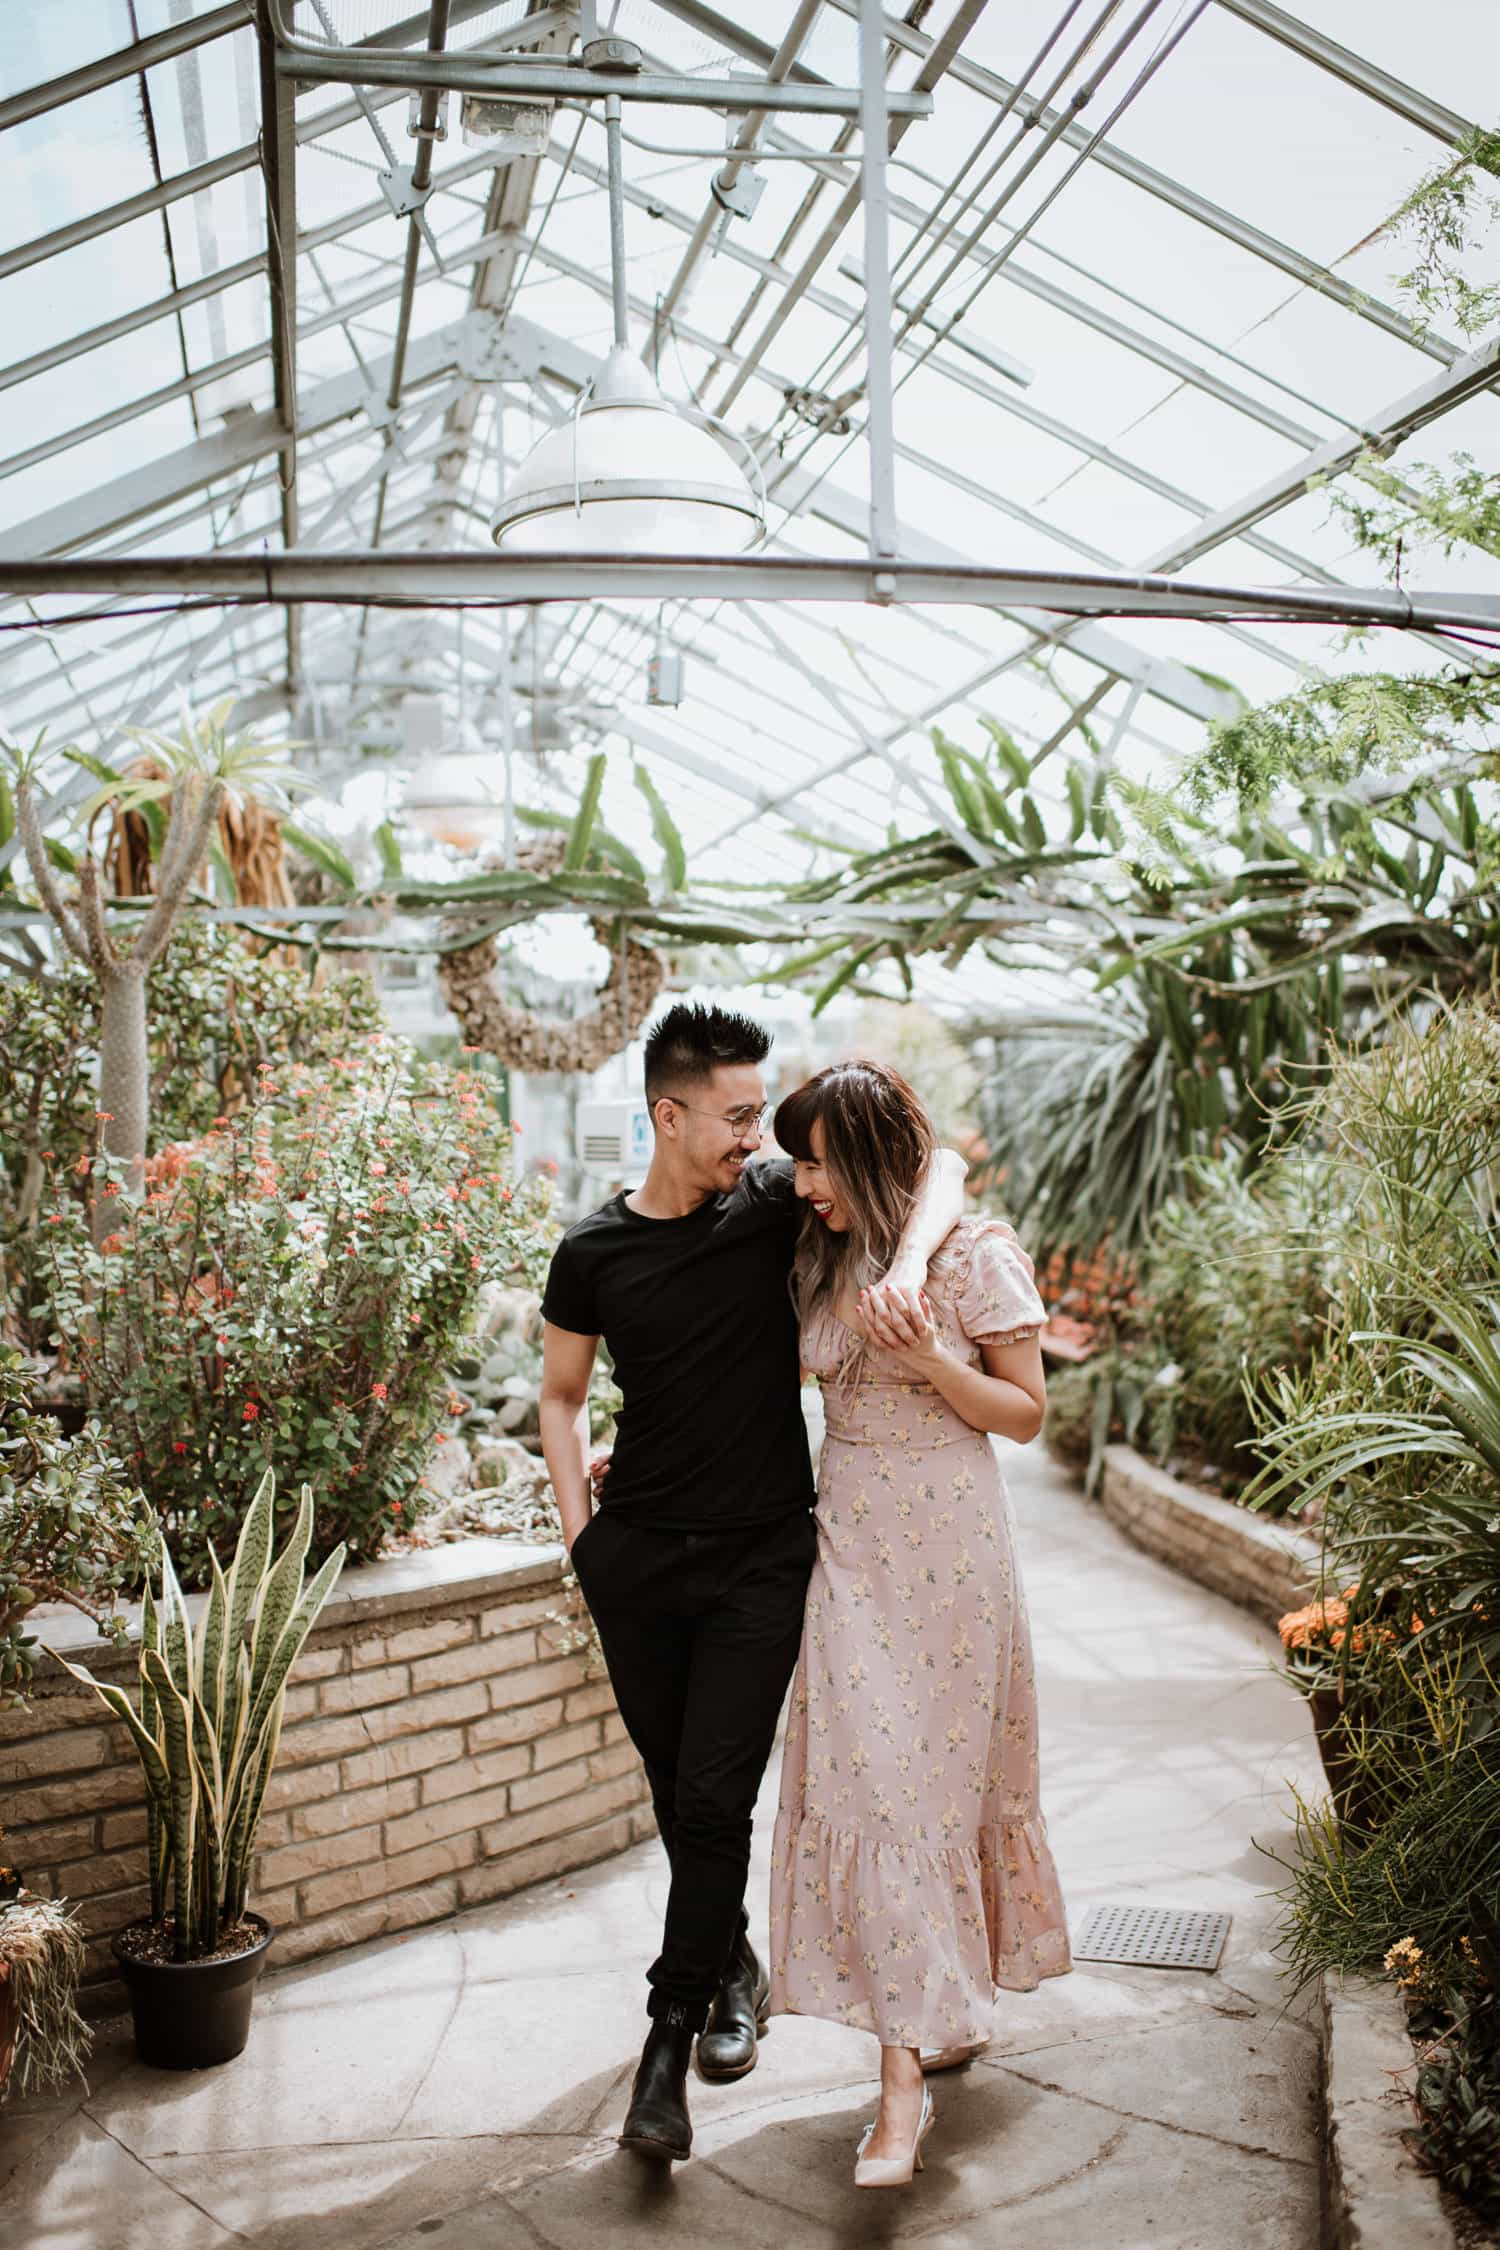 Allan Gardens Greenhouse Arid House Engagement Photo